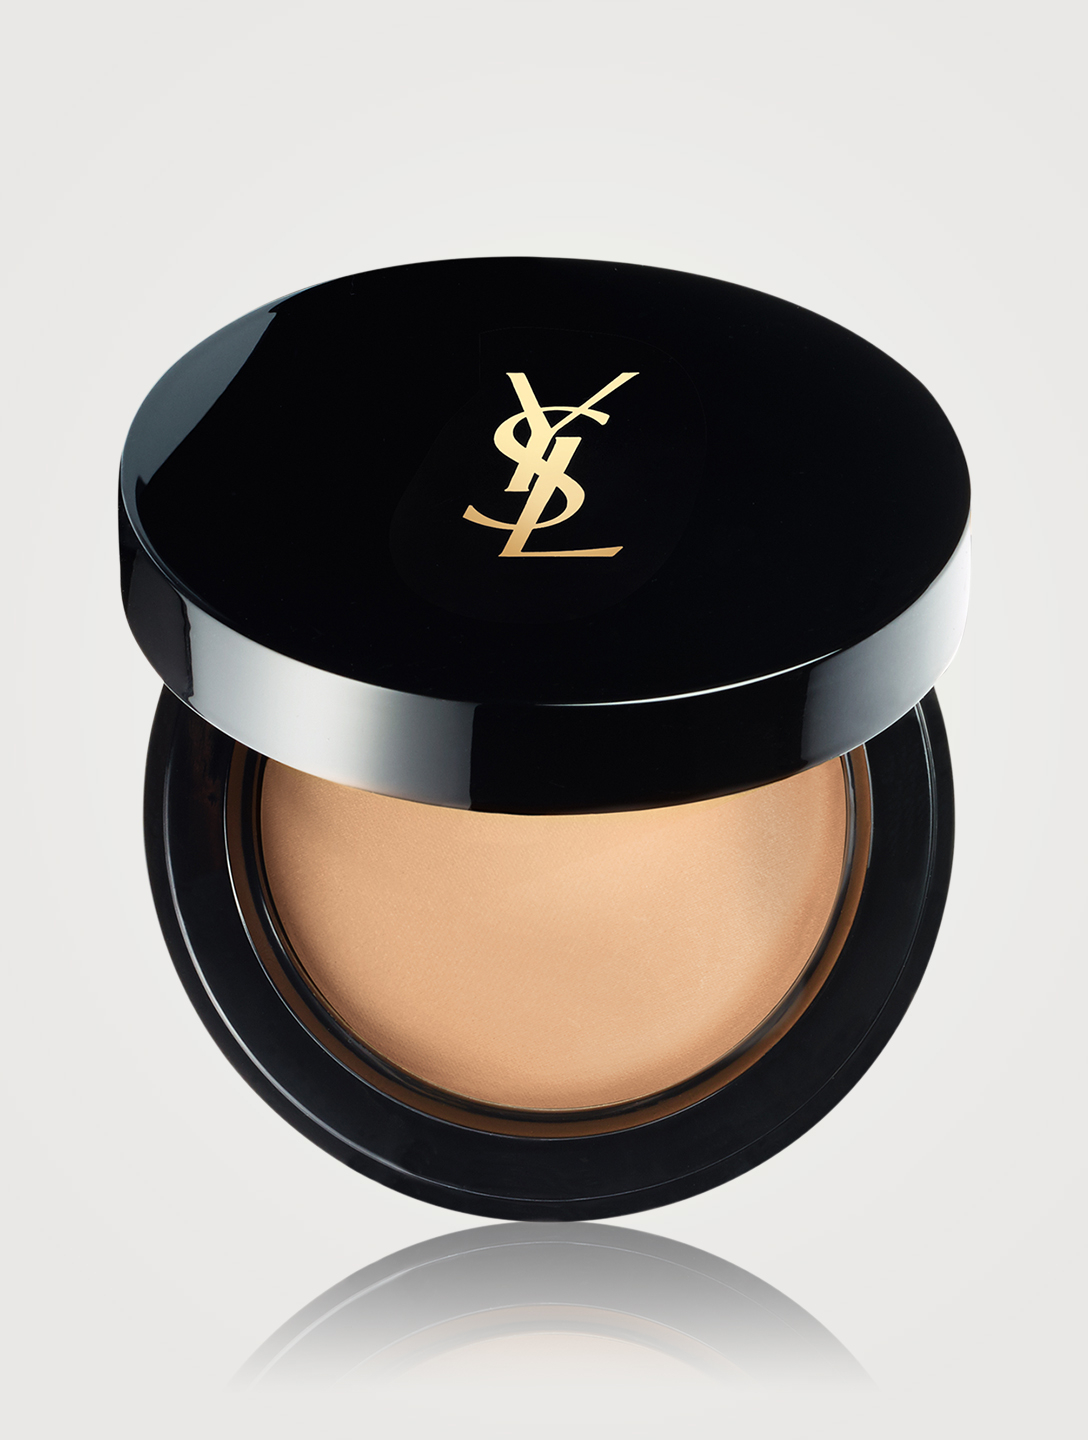 YVES SAINT LAURENT Le Teint Encre De Peau Compact Beauty Neutral